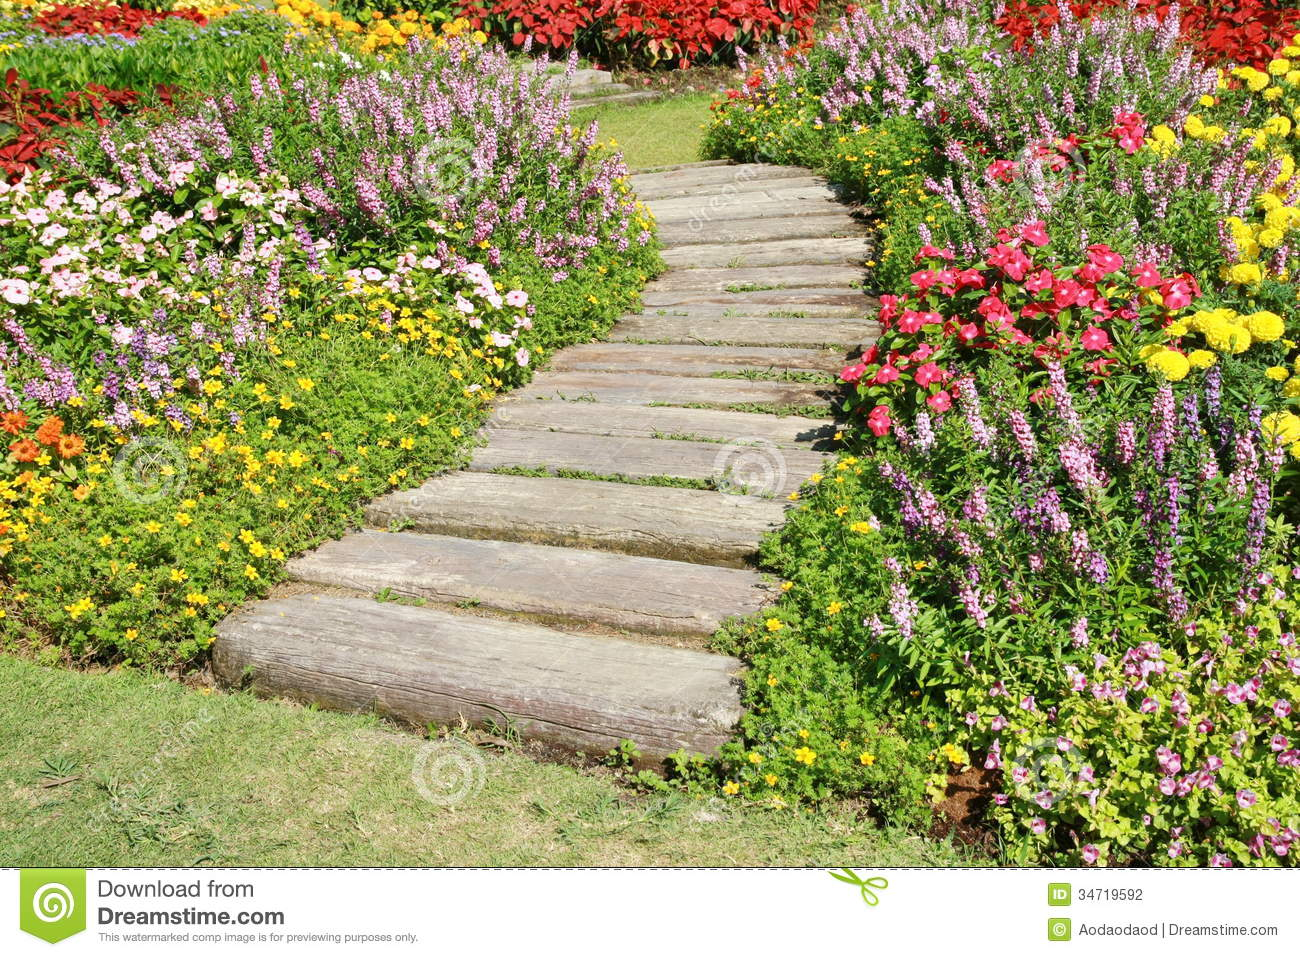 Stone walkway in garden royalty free stock photo image 34535795 - Royalty Free Stock Photo Flower Garden Walkway